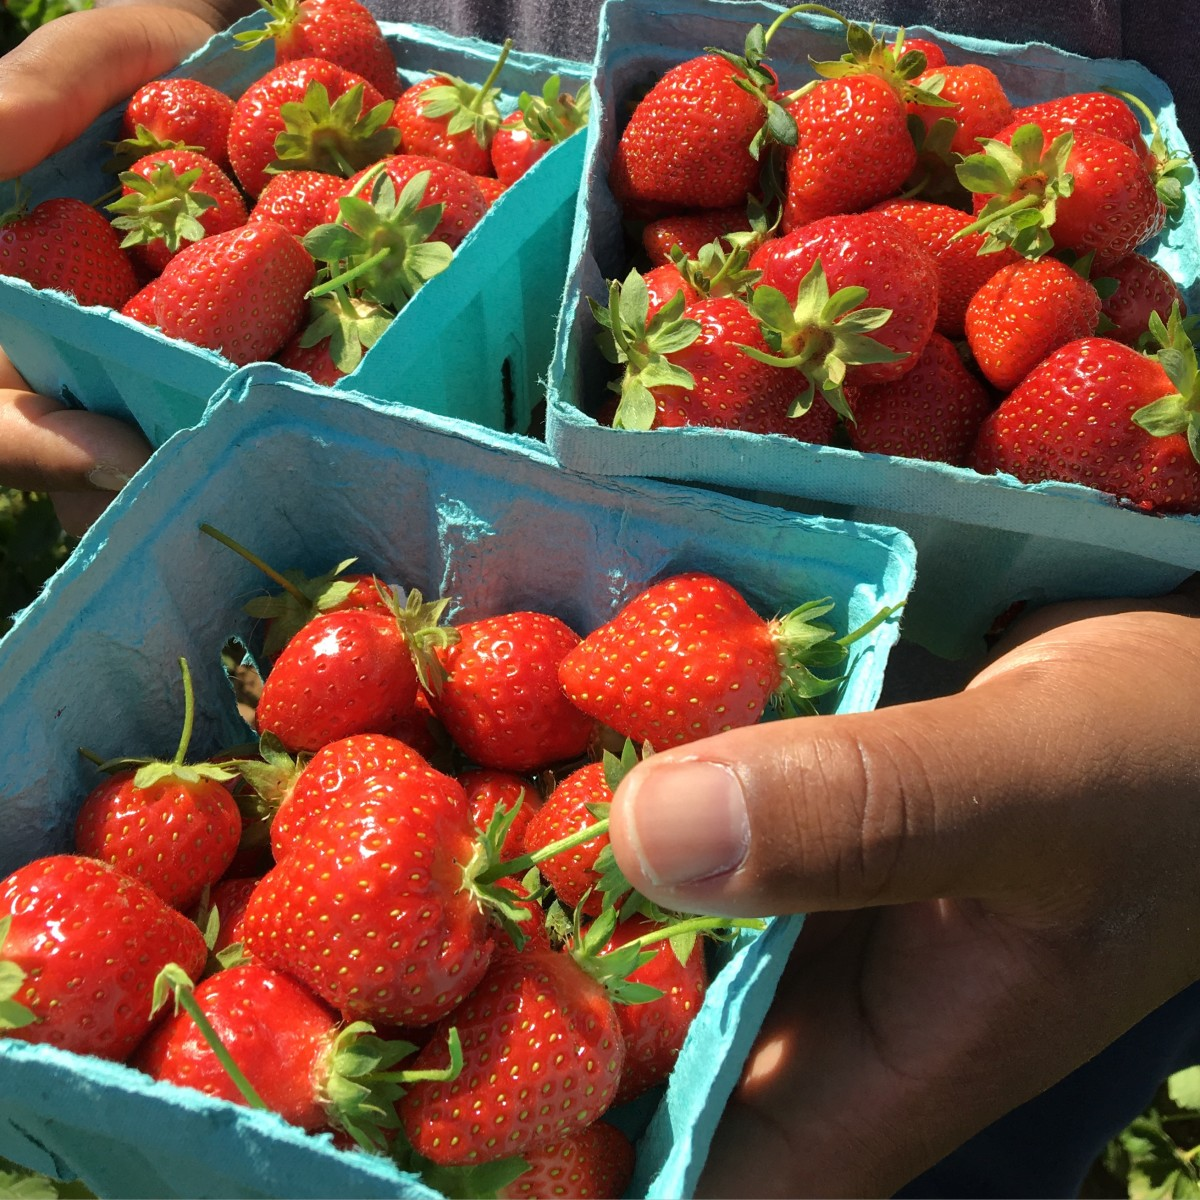 Pick-your-own strawberries from Alstede Farms, NJ.